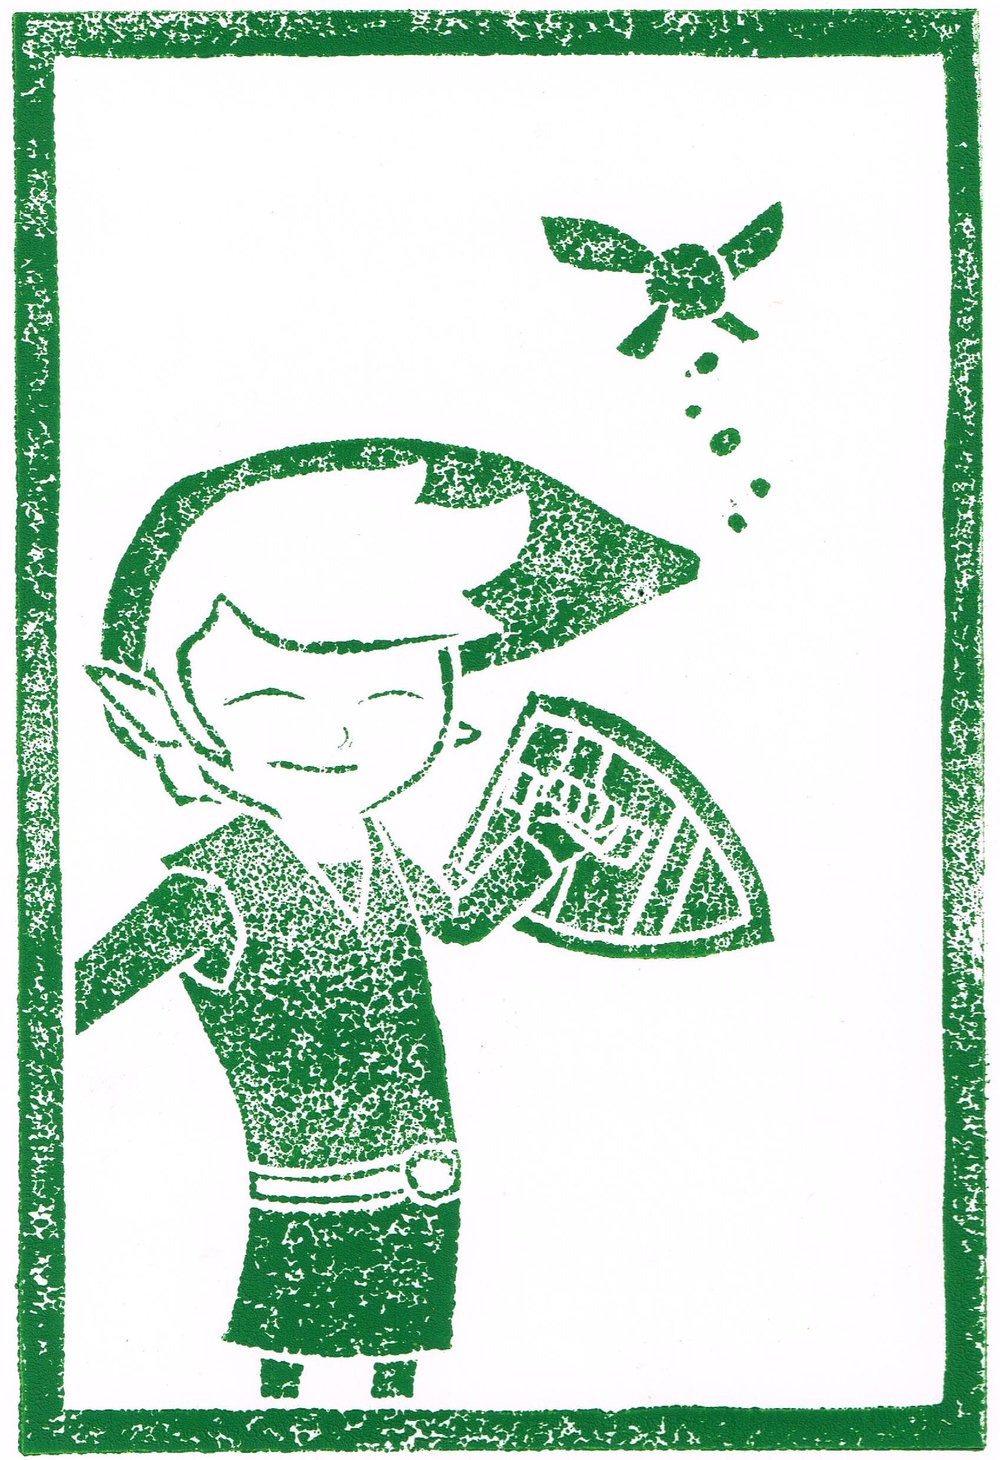 A linocut print of Link from the Legend of Zelda for an AMC Expo event guide